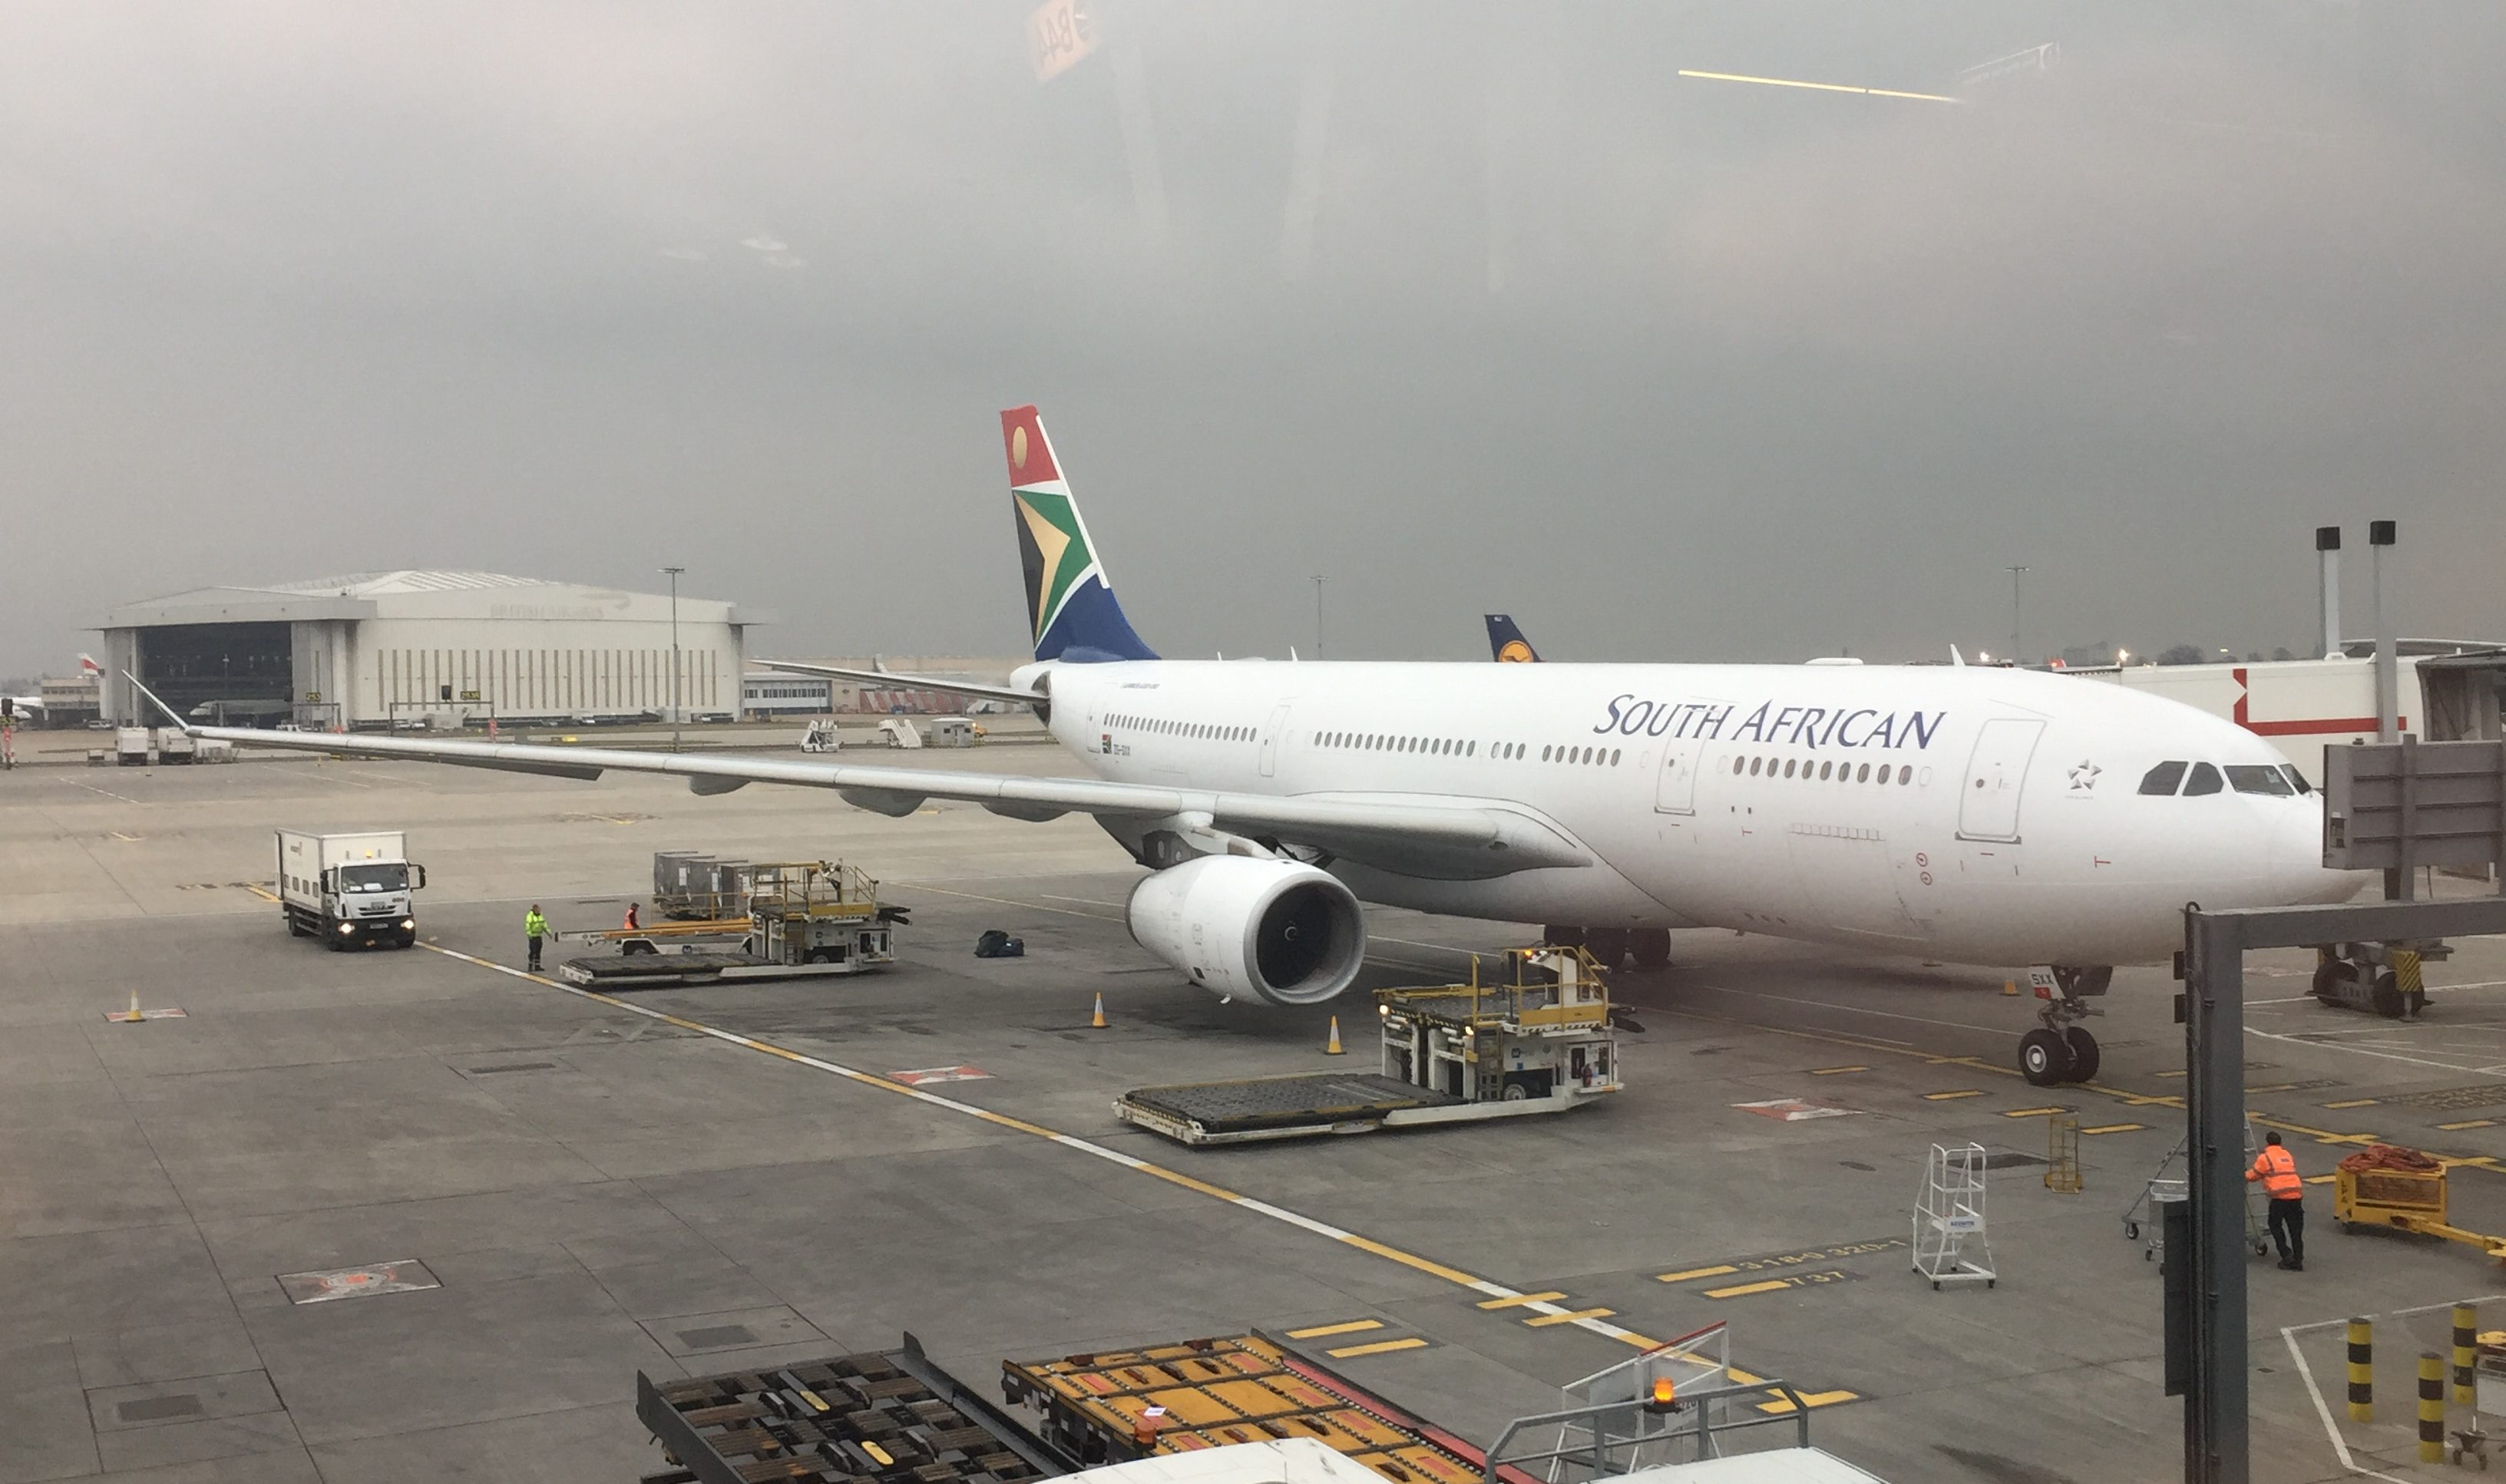 South African Airways' Airbus A330-200 i London Heathrow før afgang til Johannesburg. Foto: Danny Longhi Andreasen